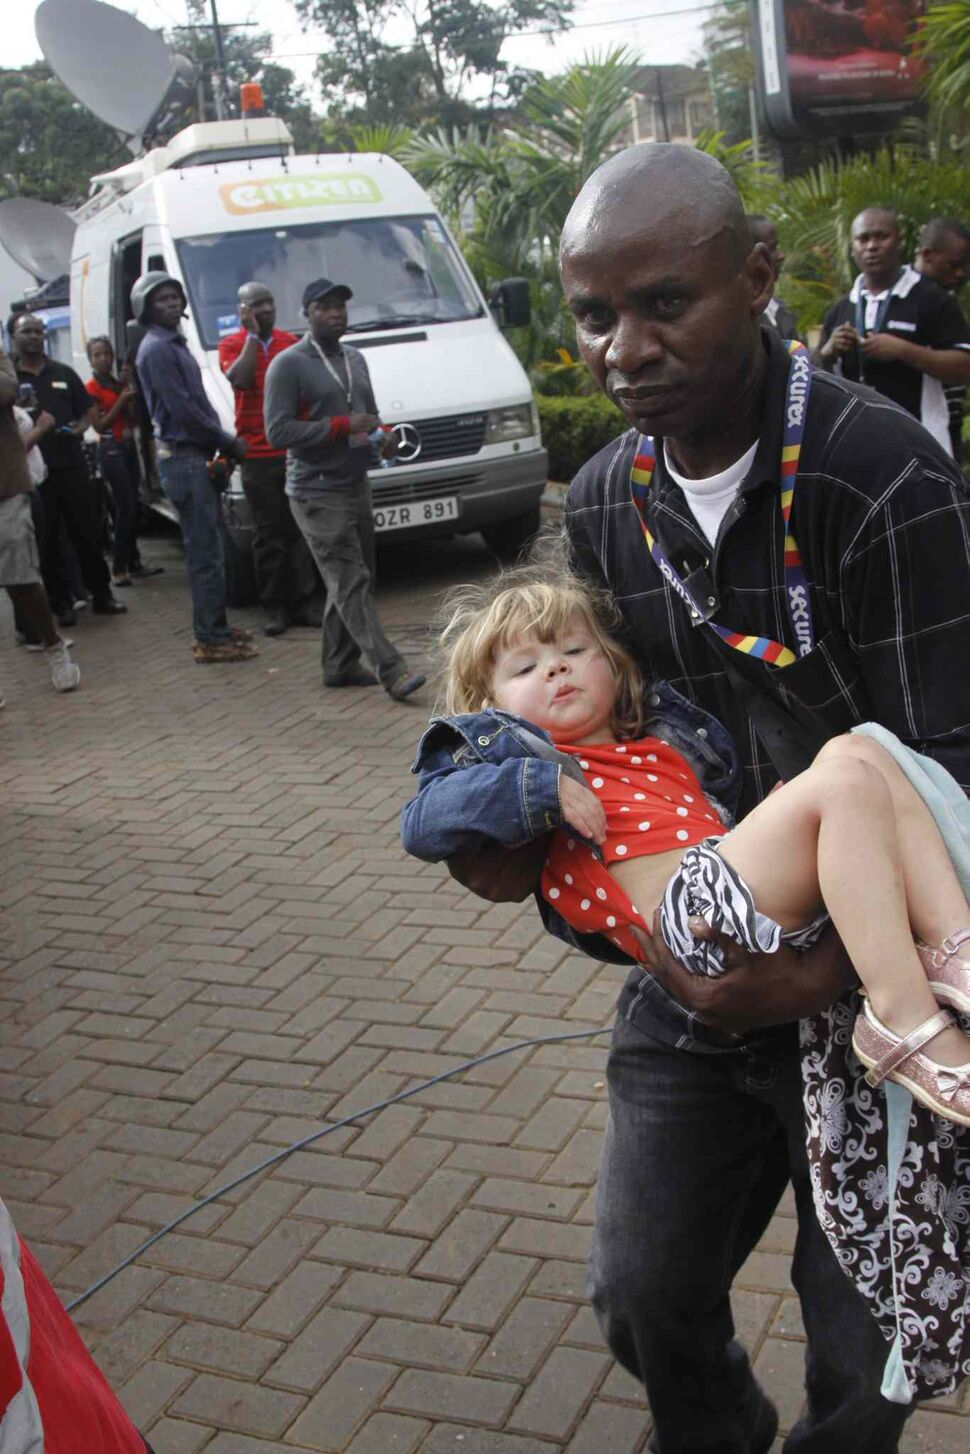 A security guard helps a child outside the Westgate Mall in Nairobi, Kenya, Saturday after gunmen threw grenades and opened fire during an attack that left multiple dead and dozens wounded. A witness to the attacks on the upscale shopping mall says that gunmen told Muslims to stand up and leave and that non-Muslims would be targeted. (Khalil Senosi / The Associated Press)